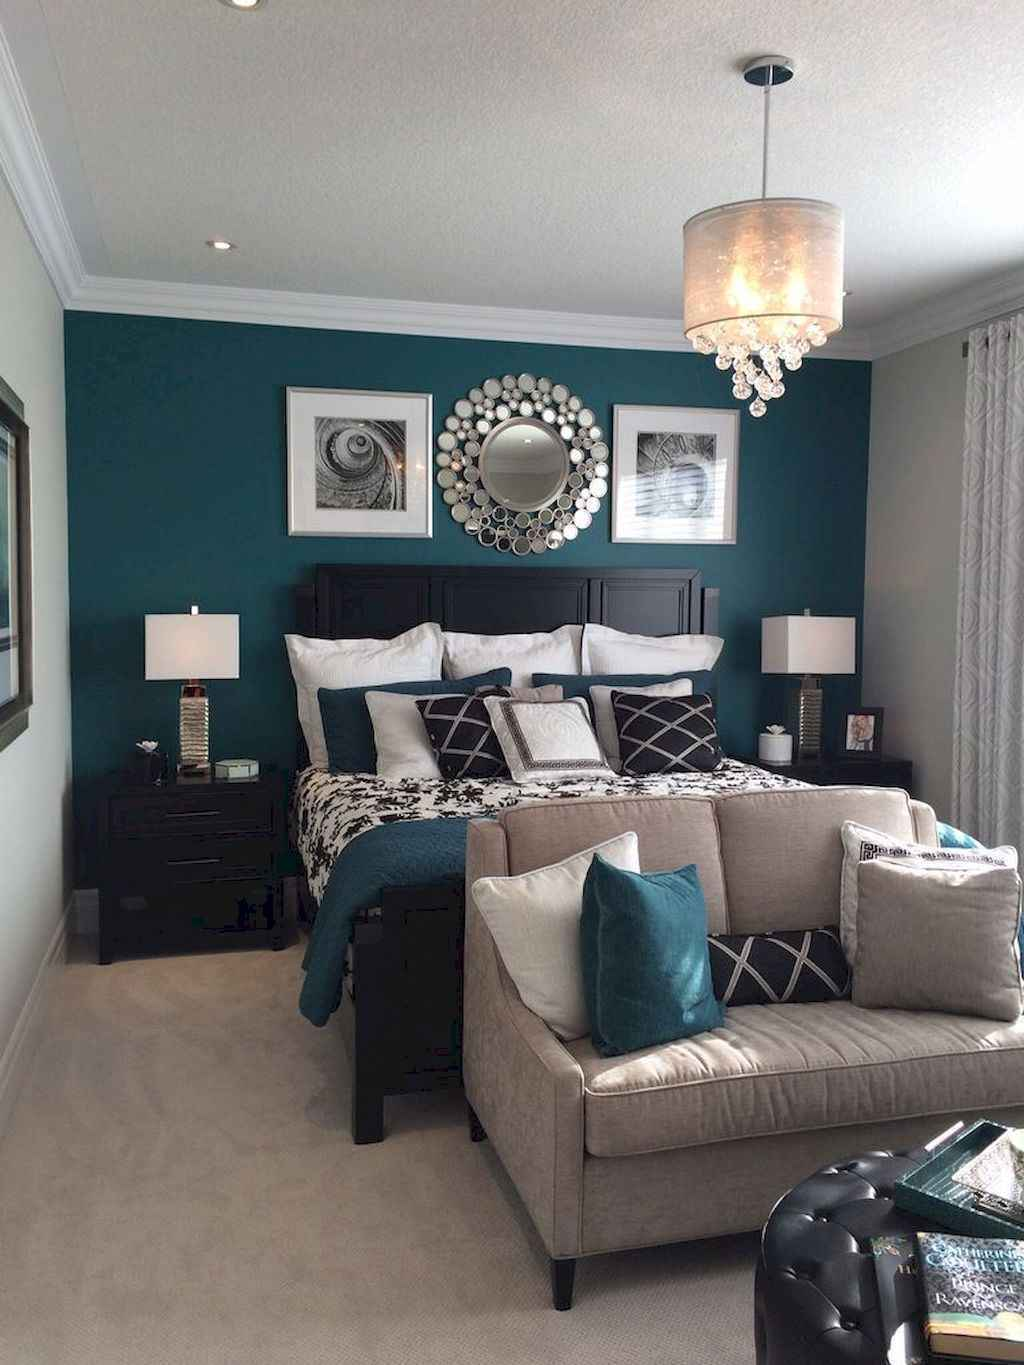 Awesome bedroom decoration ideas (32)